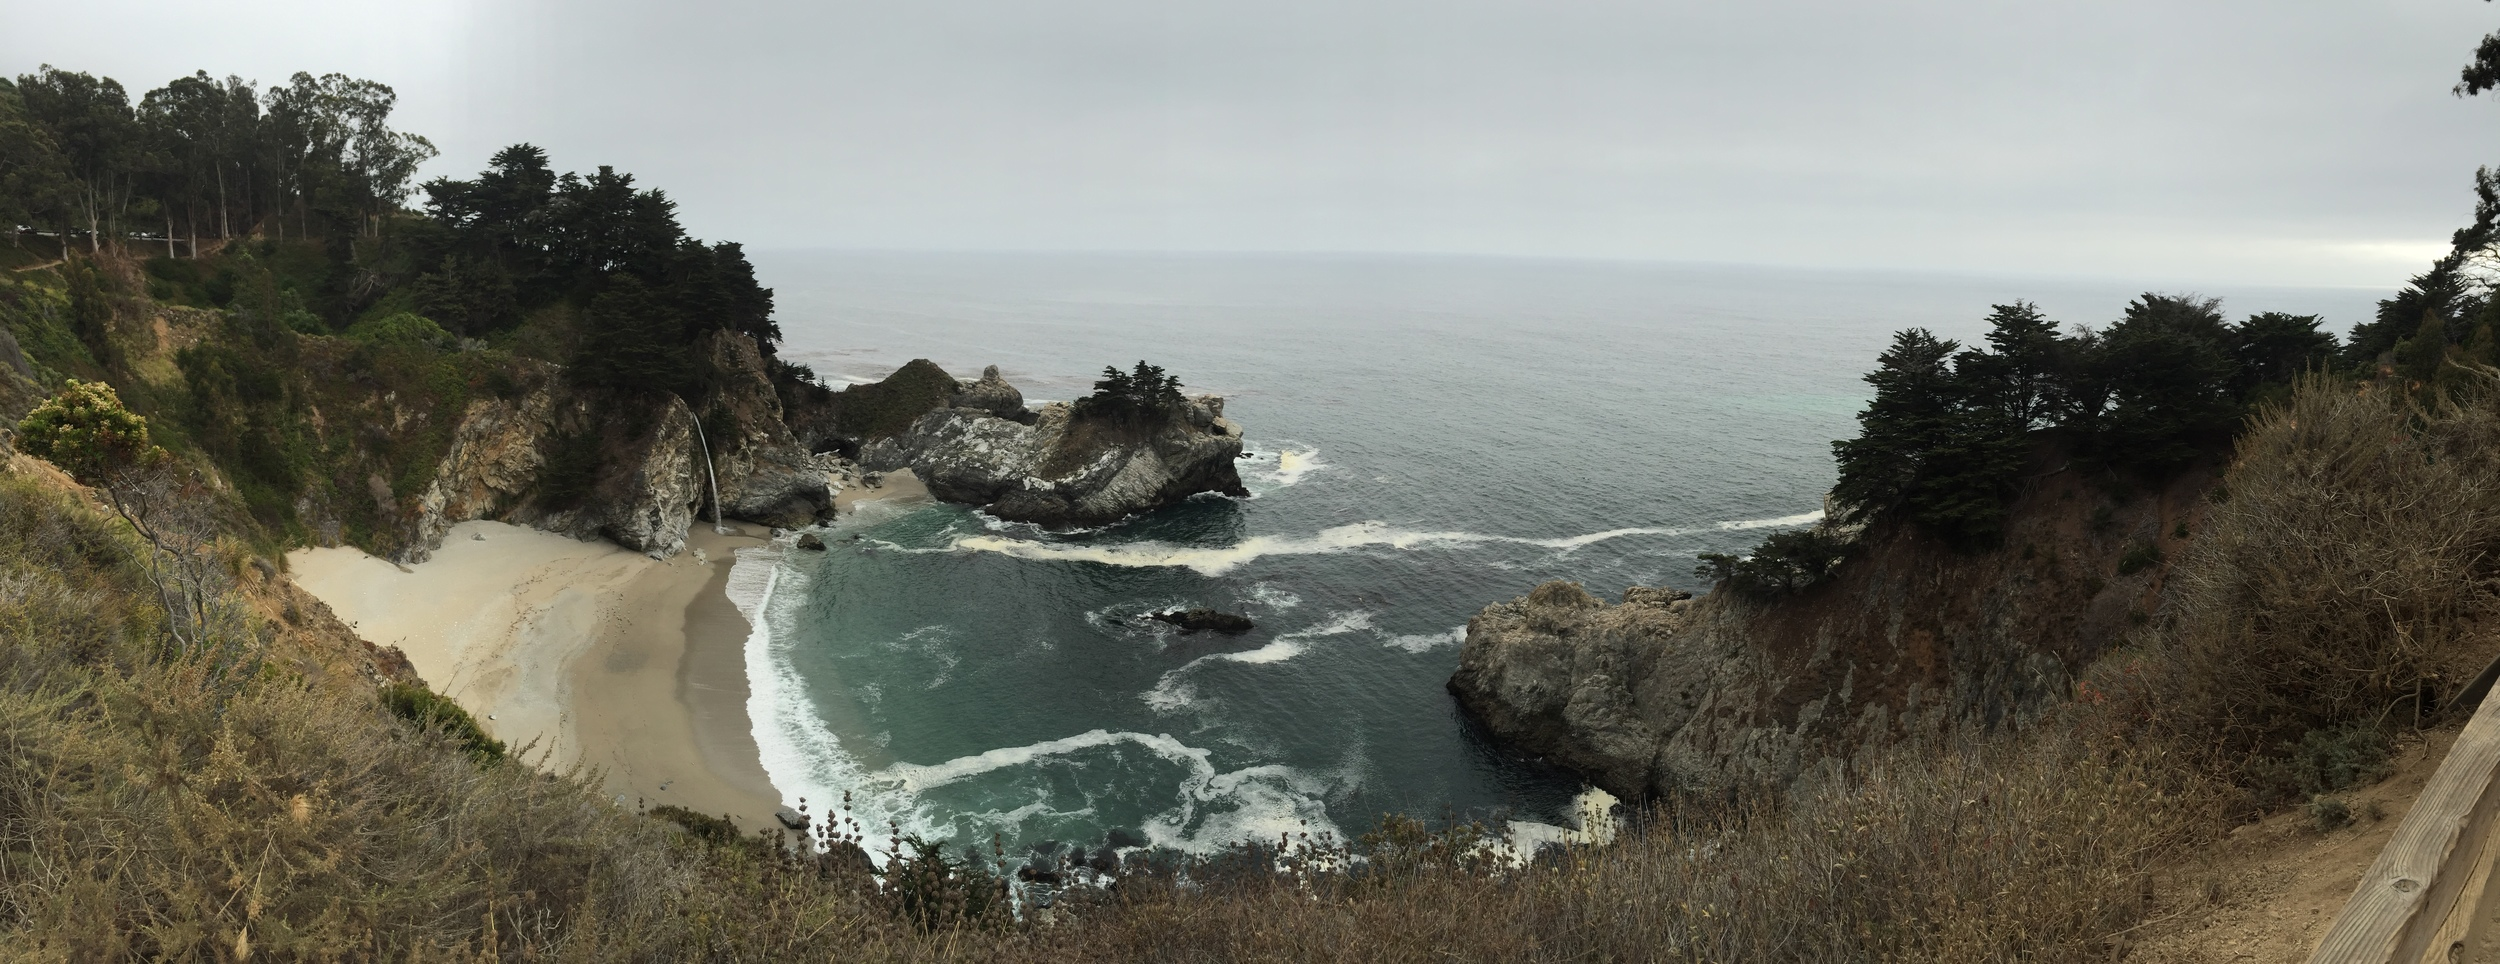 McWay Falls   Big Sur, CA  Photo by : Matt Menendez